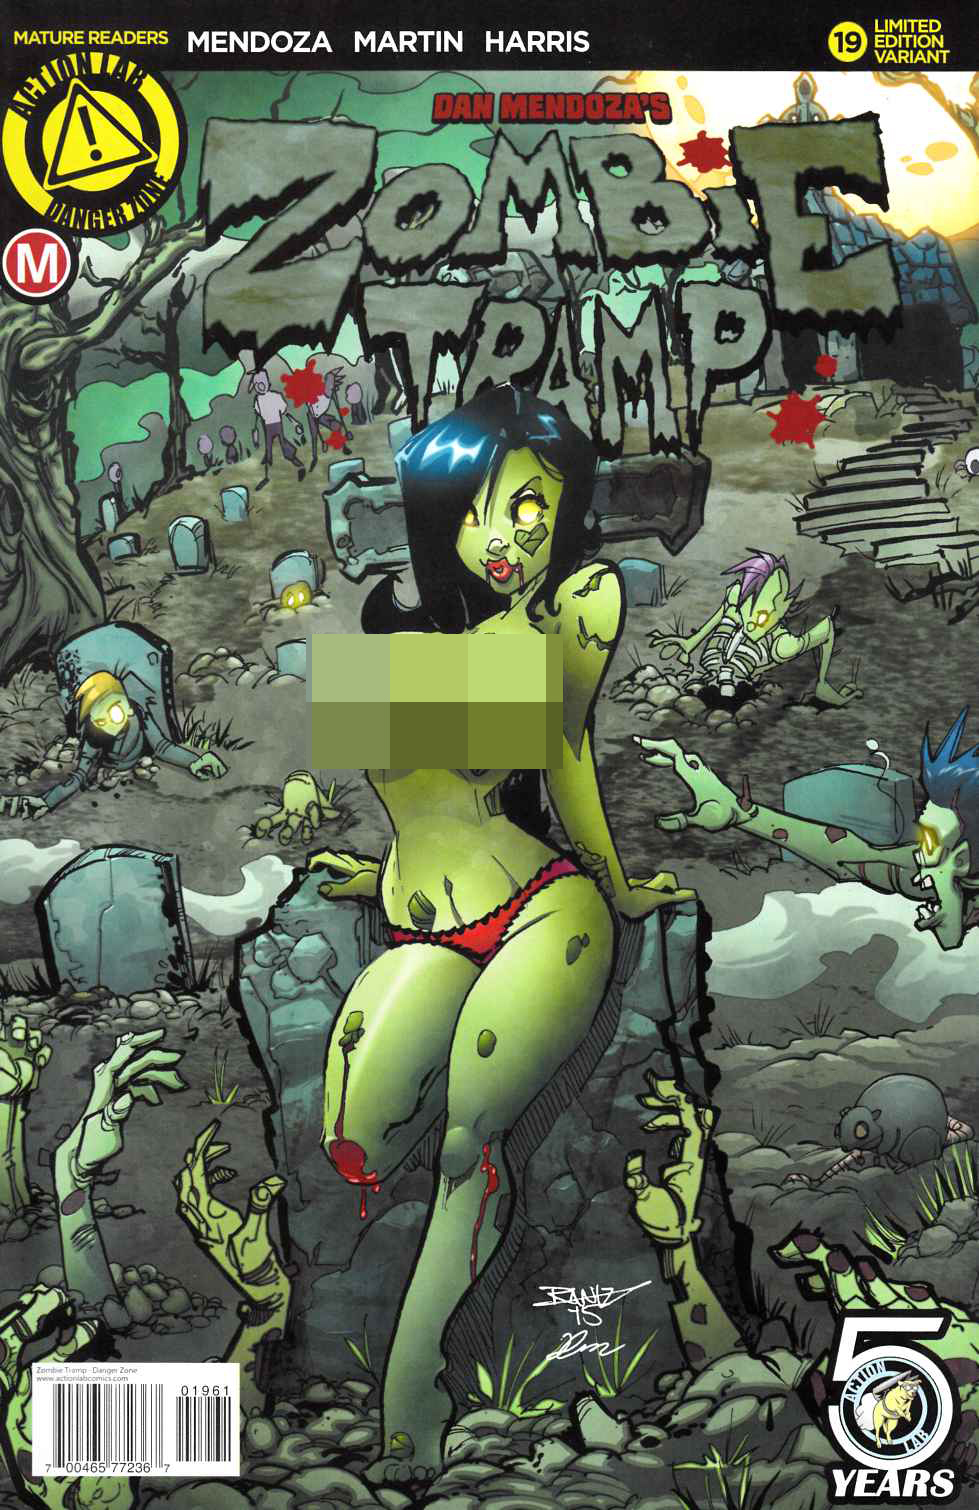 Zombie Tramp Ongoing #19 Kintz Risque Variant Cover [Danger Zone Comic]